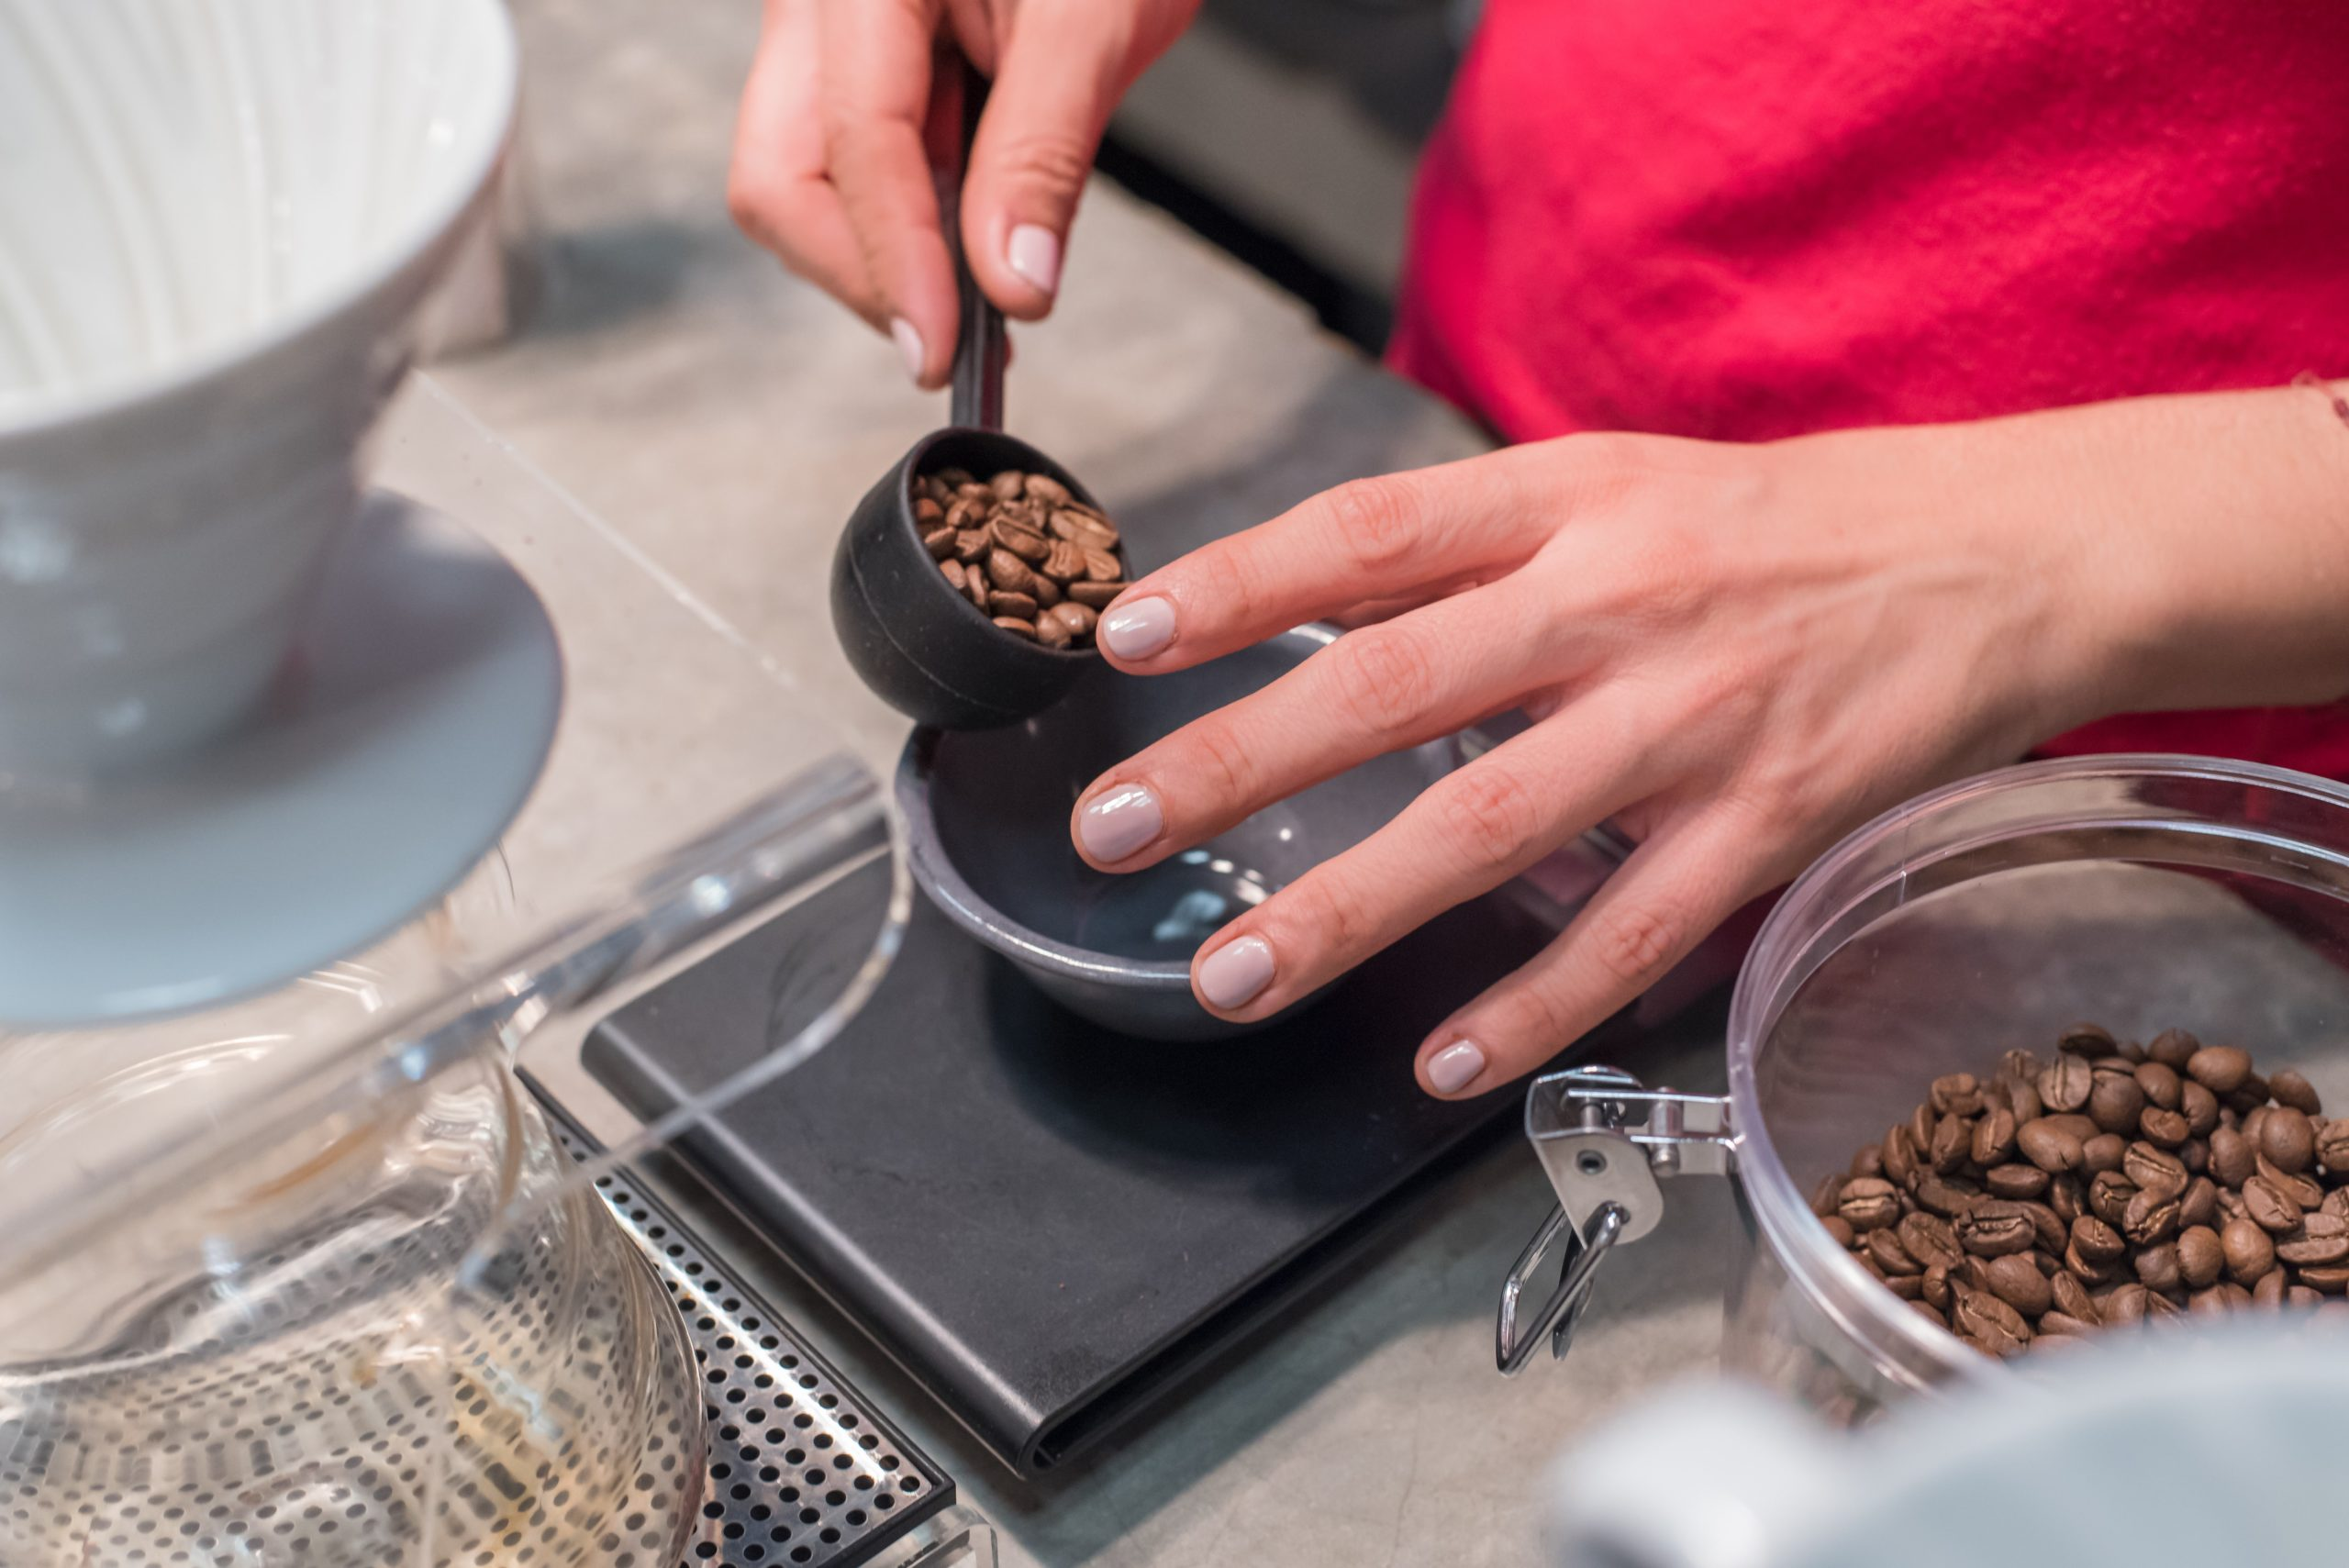 weighing a scoop of coffee beans